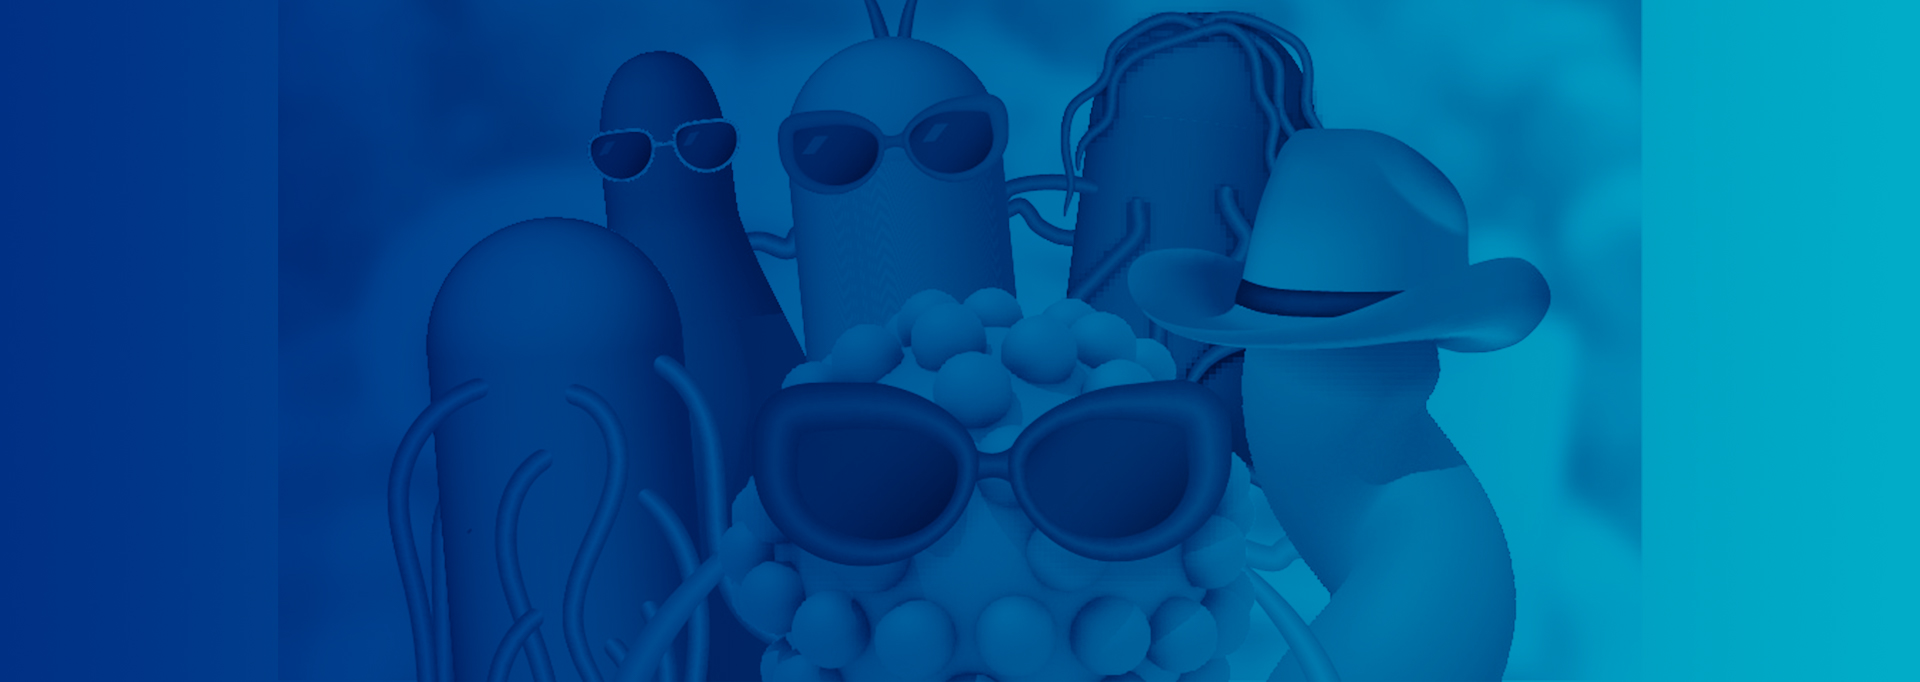 A group photo of anthropomorphized foodborne pathogens: E. coli, norovirus, Salmonella, Clostridium, and Campylobacter